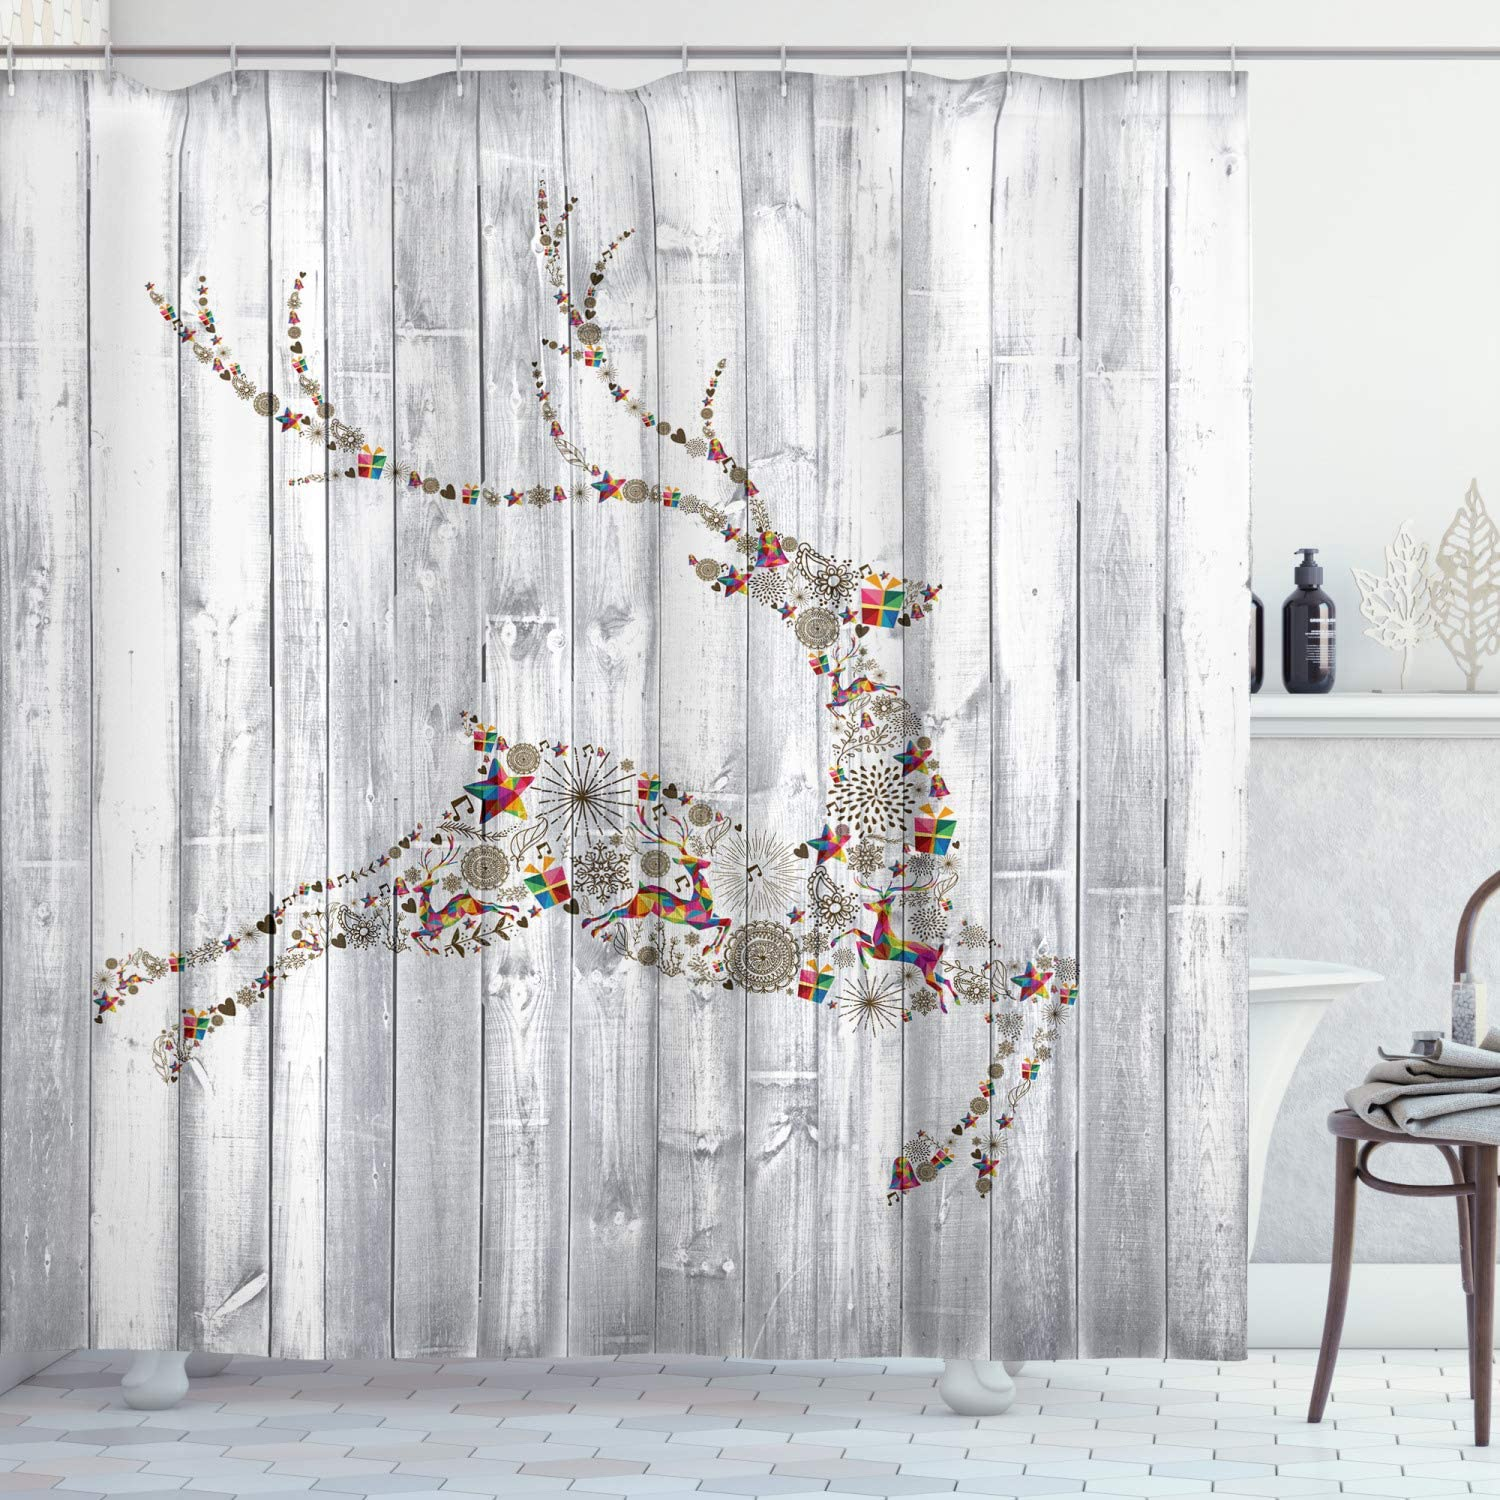 """Ambesonne Deer Shower Curtain, Colorful Animal Silhouette Various Christmas Elements Wooden Planks Theme, Cloth Fabric Bathroom Decor Set with Hooks, 70"""" Long, Grey Multicolor"""